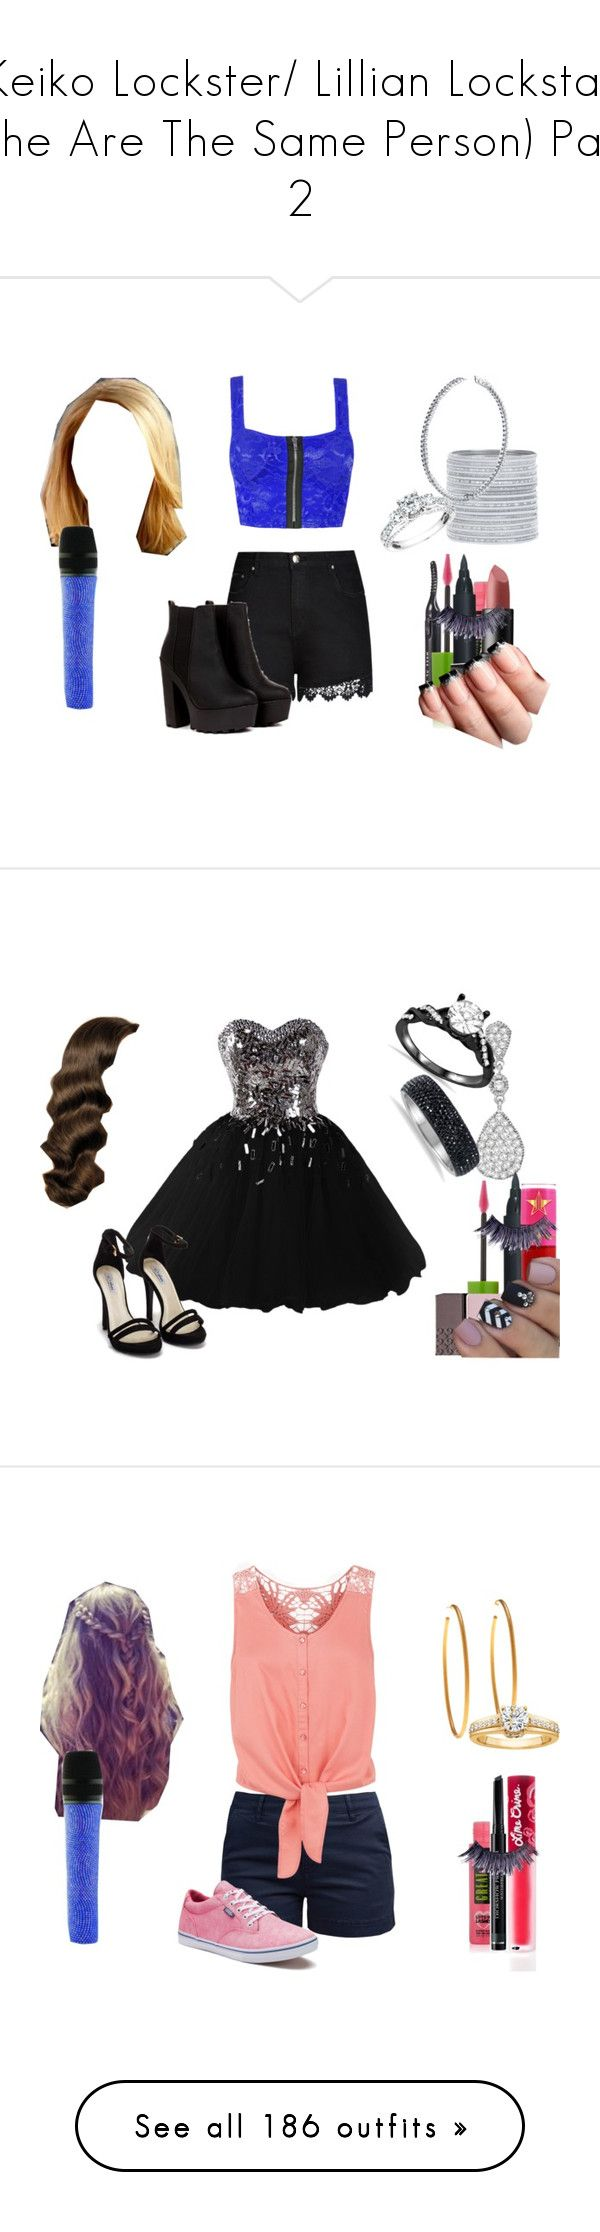 """""""Keiko Lockster/ Lillian Lockstar (The Are The Same Person) Part 2"""" by shestheman01 on Polyvore featuring MAKE UP STORE, Maybelline, City Chic, Manic Panic NYC, Swarovski, BERRICLE, Reeds Jewelers, plus size clothing, Nly Shoes and Allurez"""